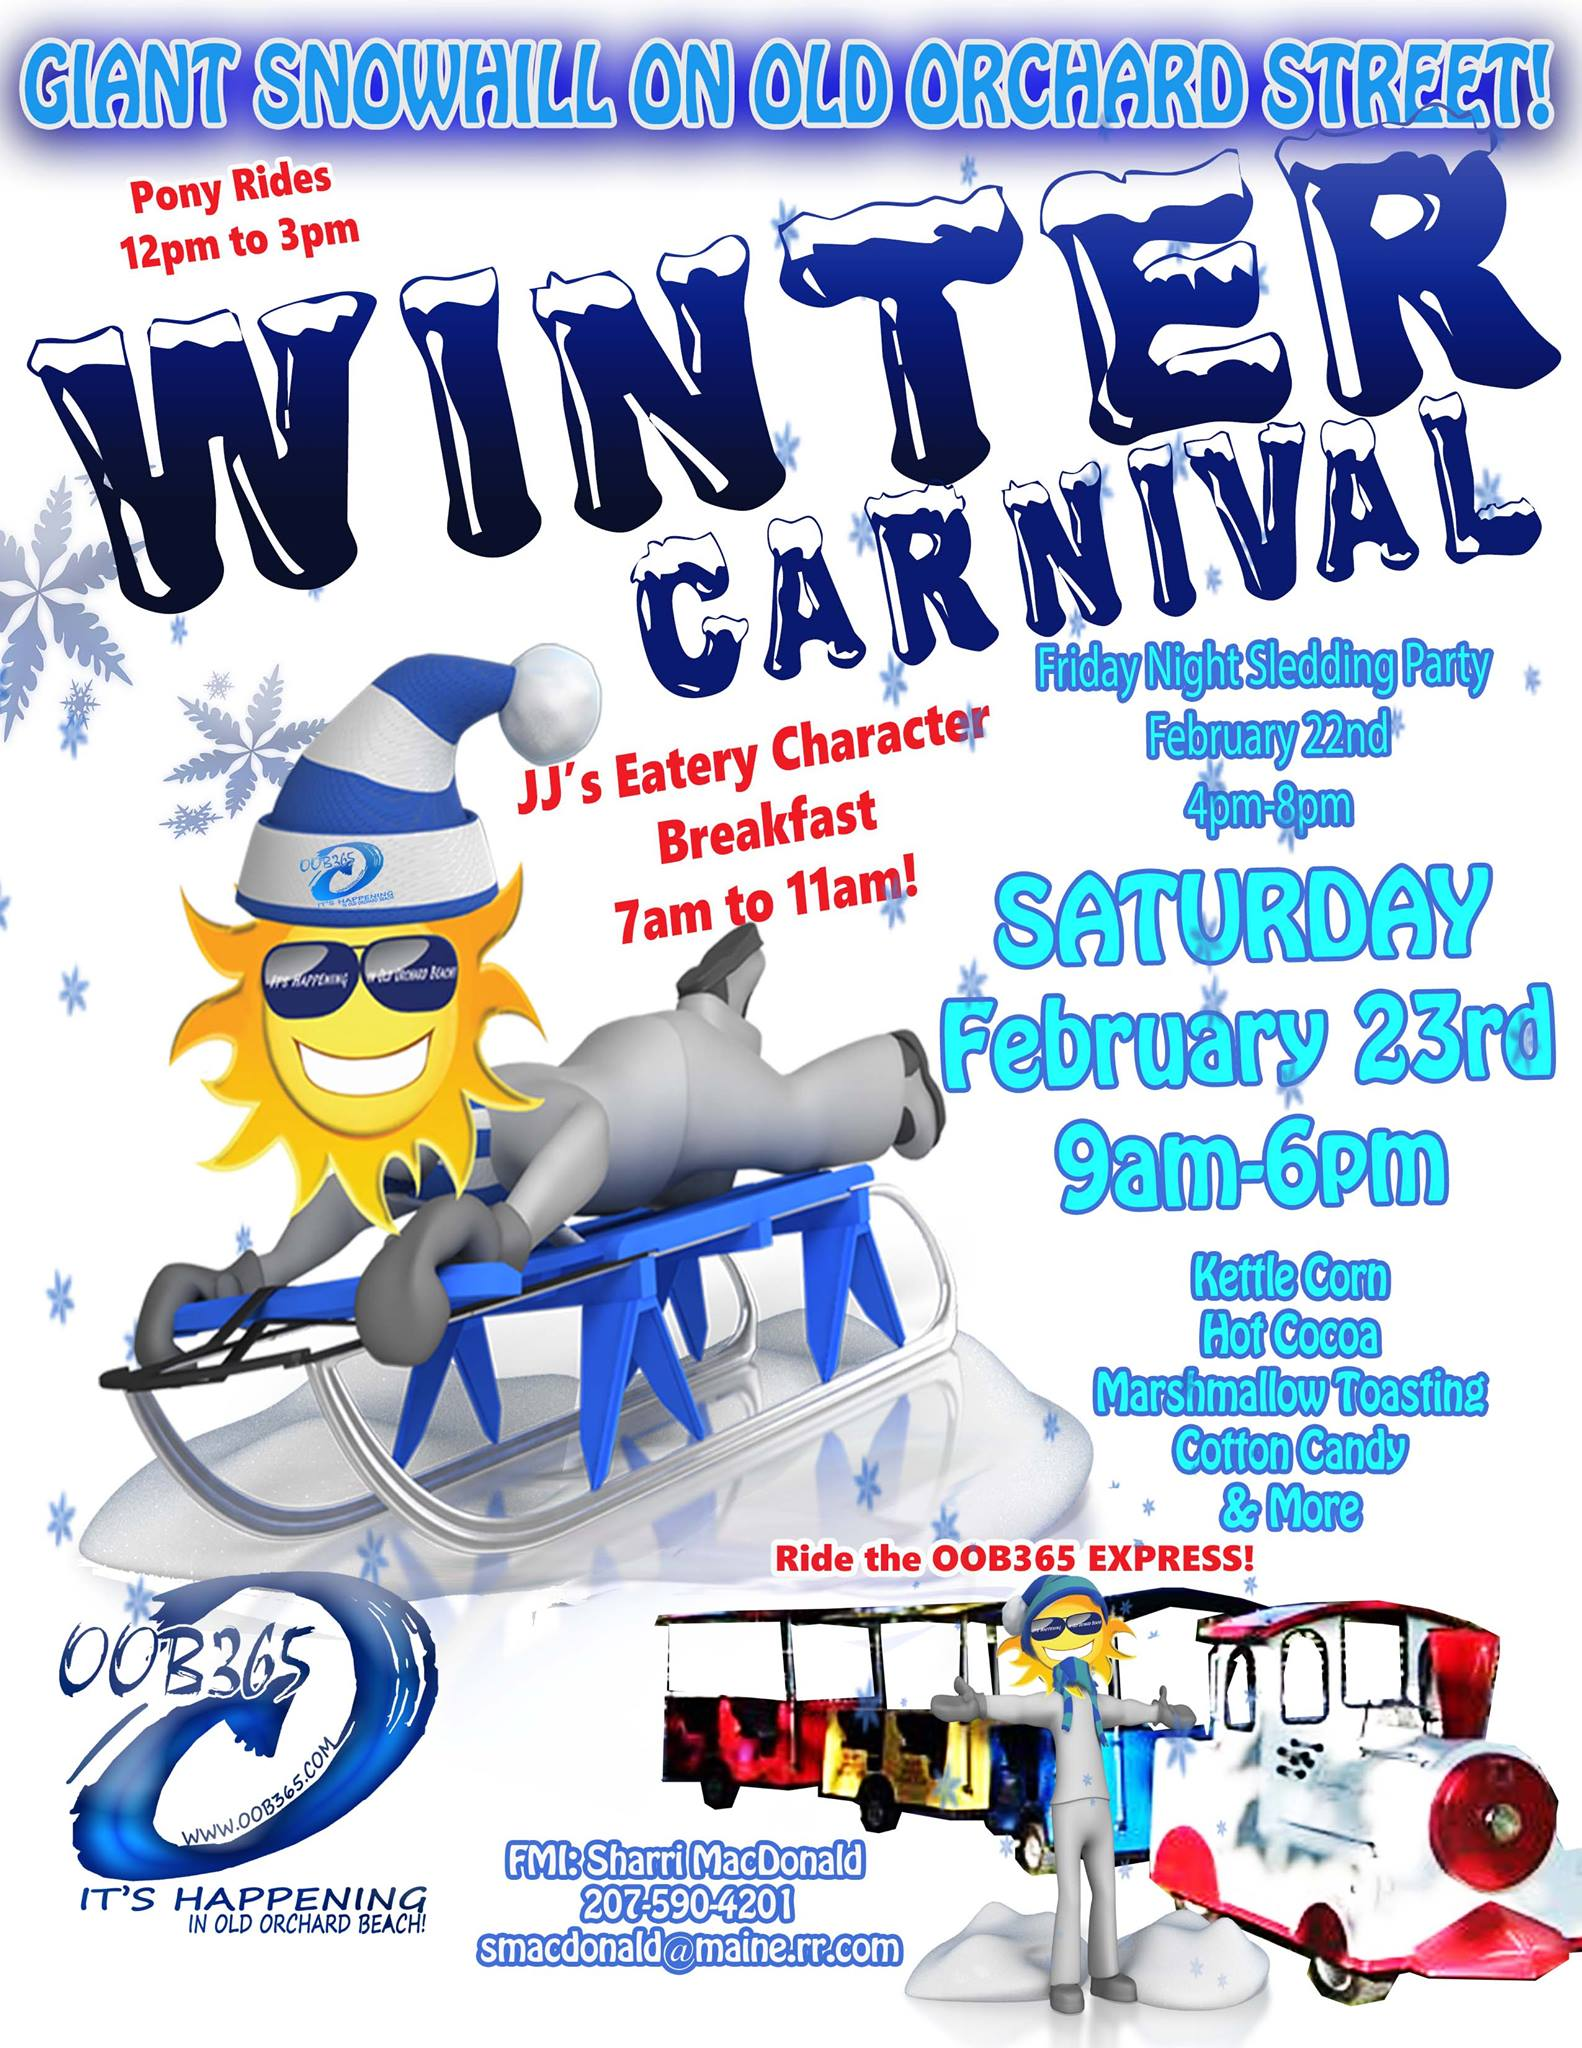 OOB 365 Winter Carnival 2019 | Old Orchard Beach Maine